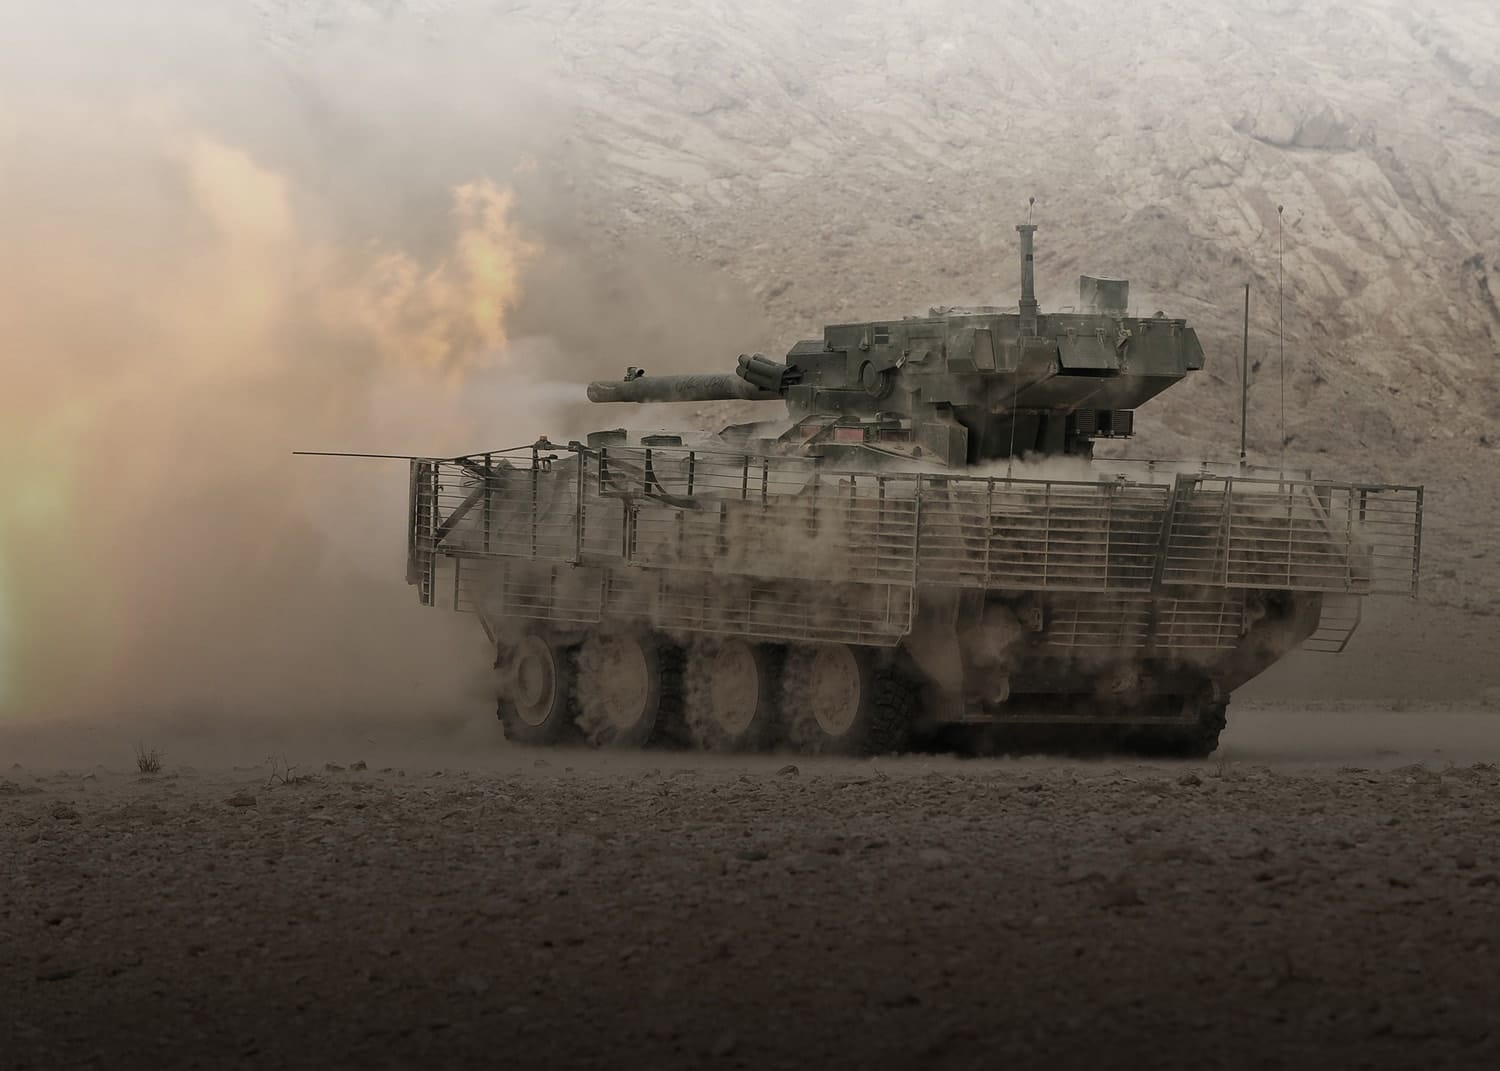 tank firing a volley in the dust